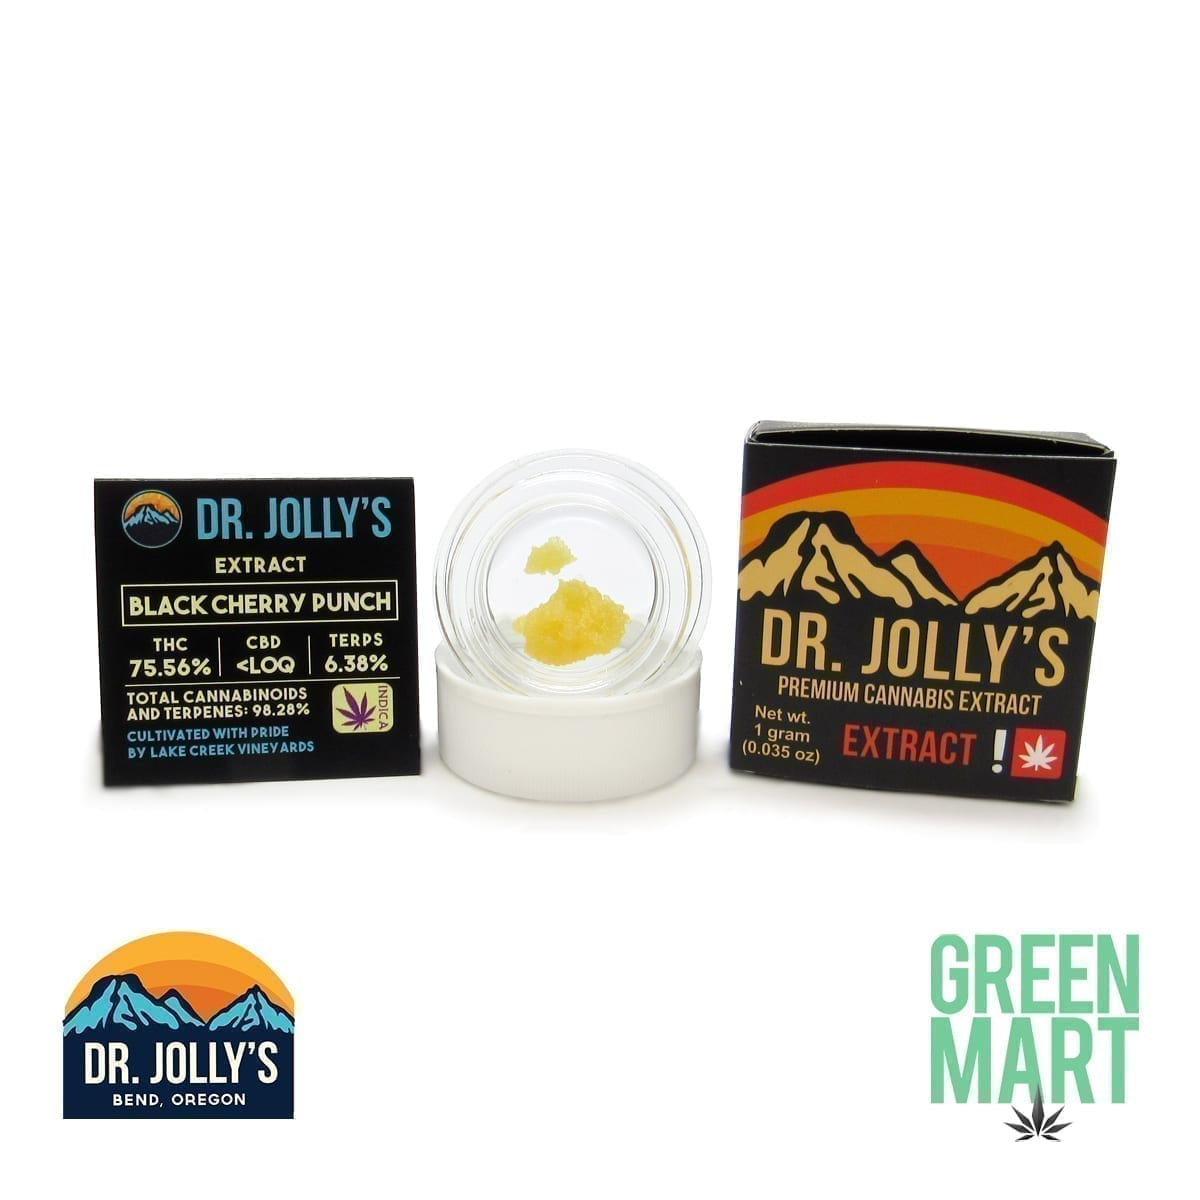 Dr. Jolly's Extracts - Black Cherry Punch